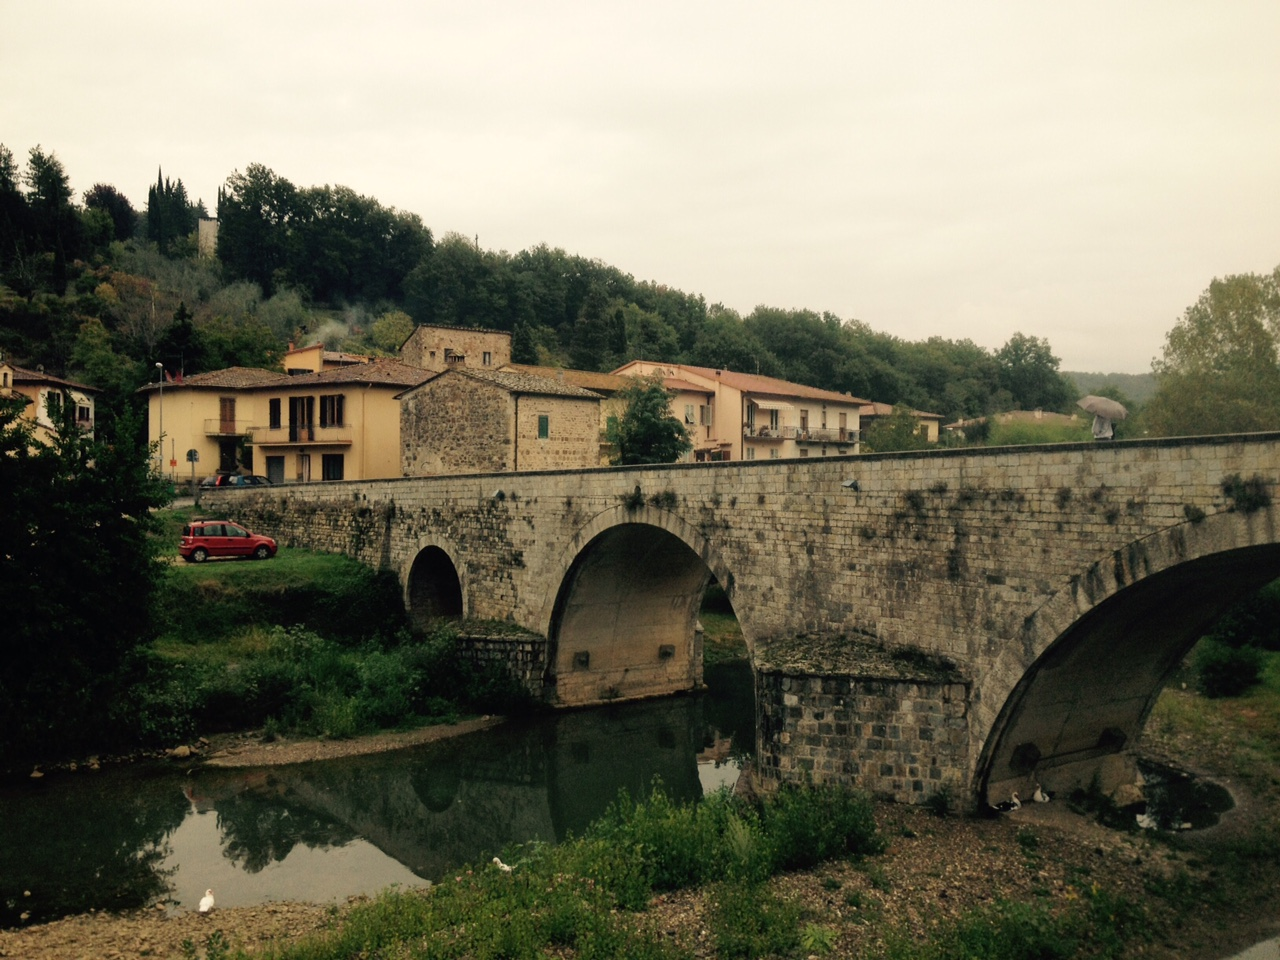 Ponte di Ramagliano, a Roman medieval bridge that crosses over the Pesa River in Sambuca. Photo: Bruny Nieves